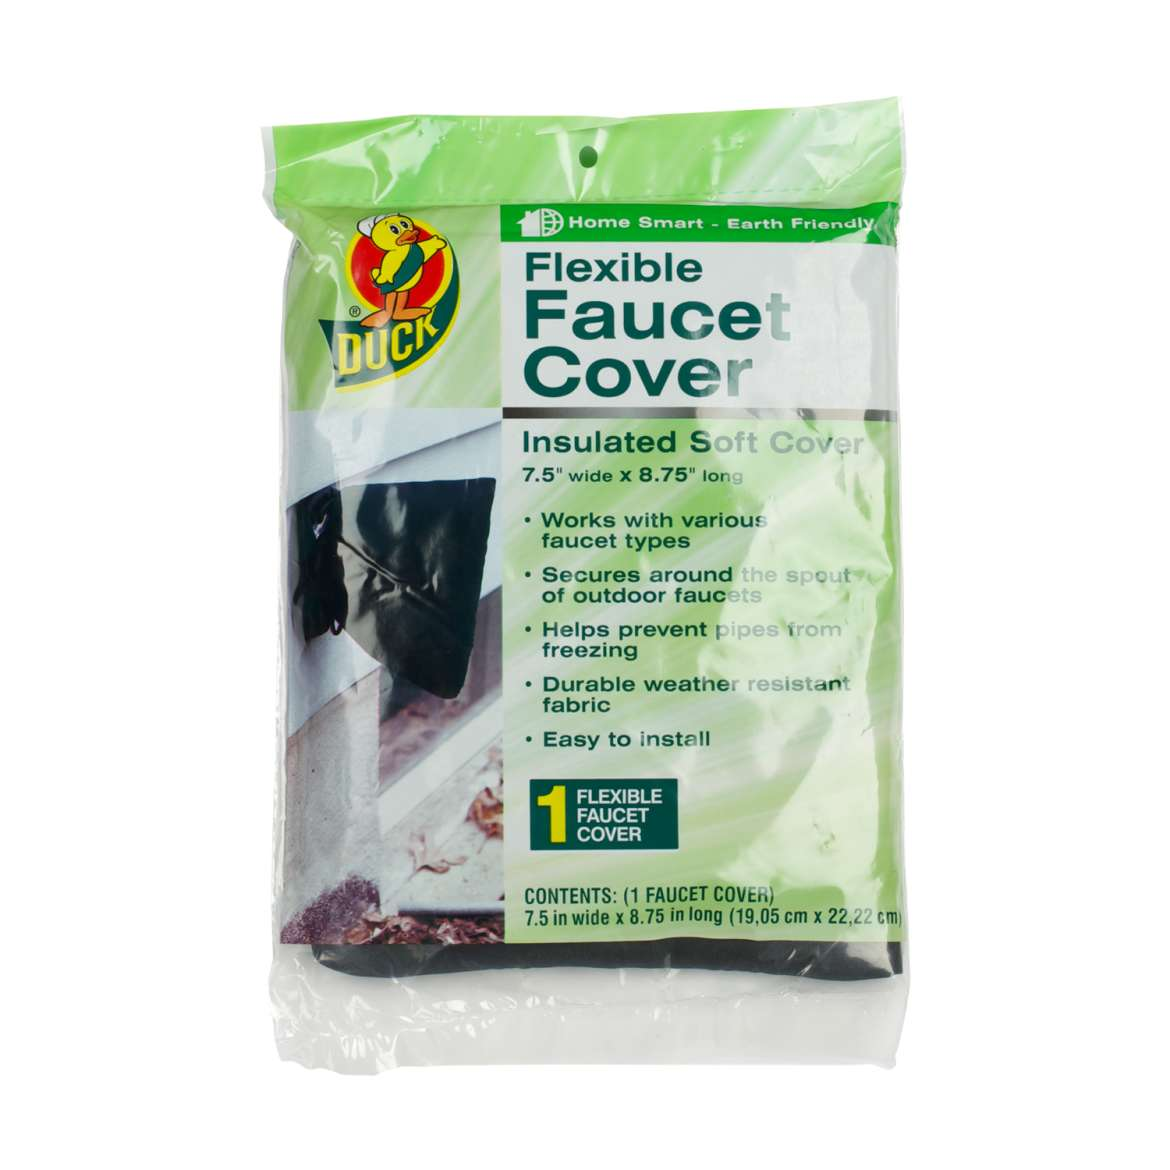 Duck® Brand Flexible Faucet Cover - 11.25 in. x 8.75 in. Image